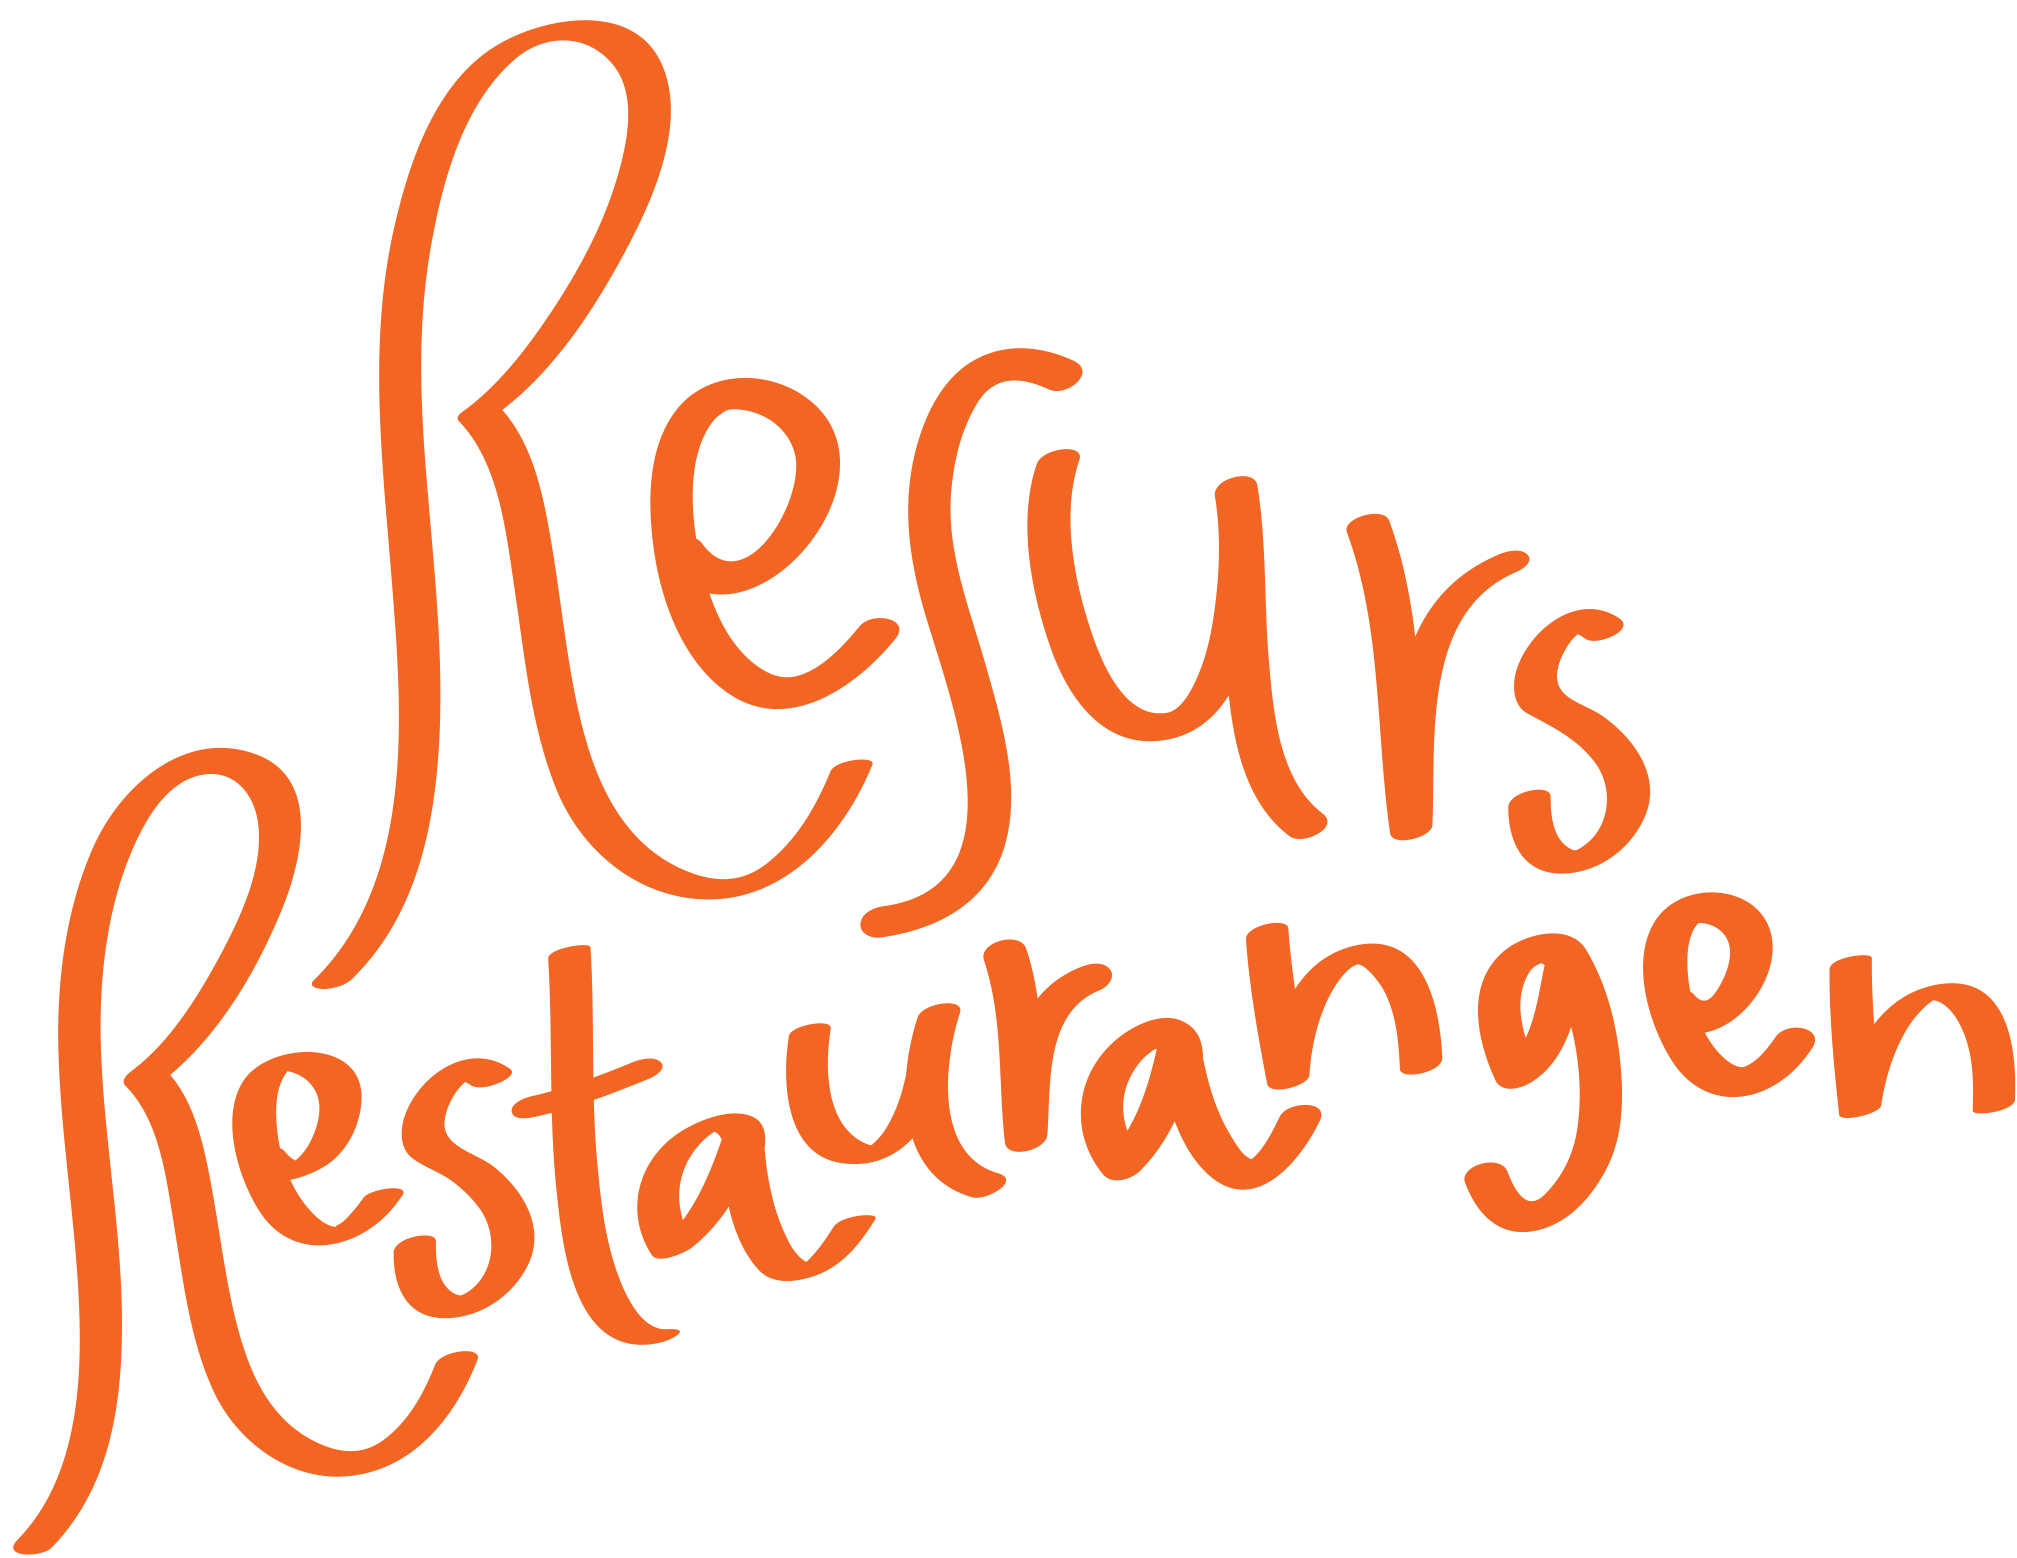 ResursRestaurangen